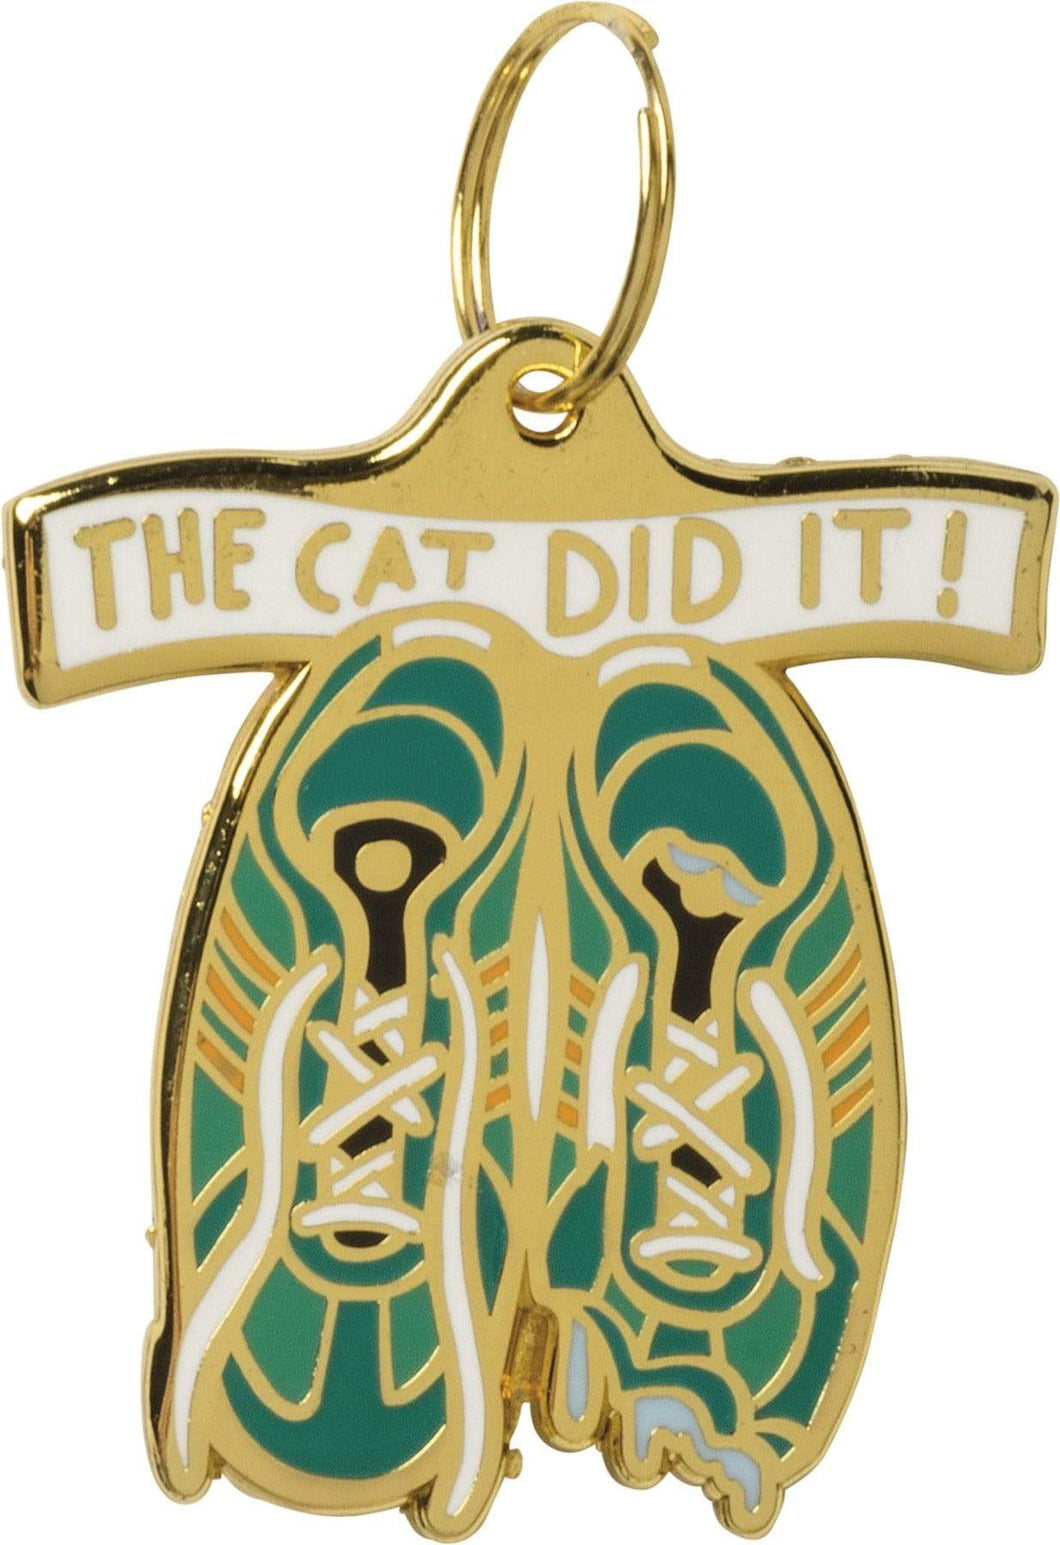 Primitives by Kathy The Cat Did It! Dog Collar Charm